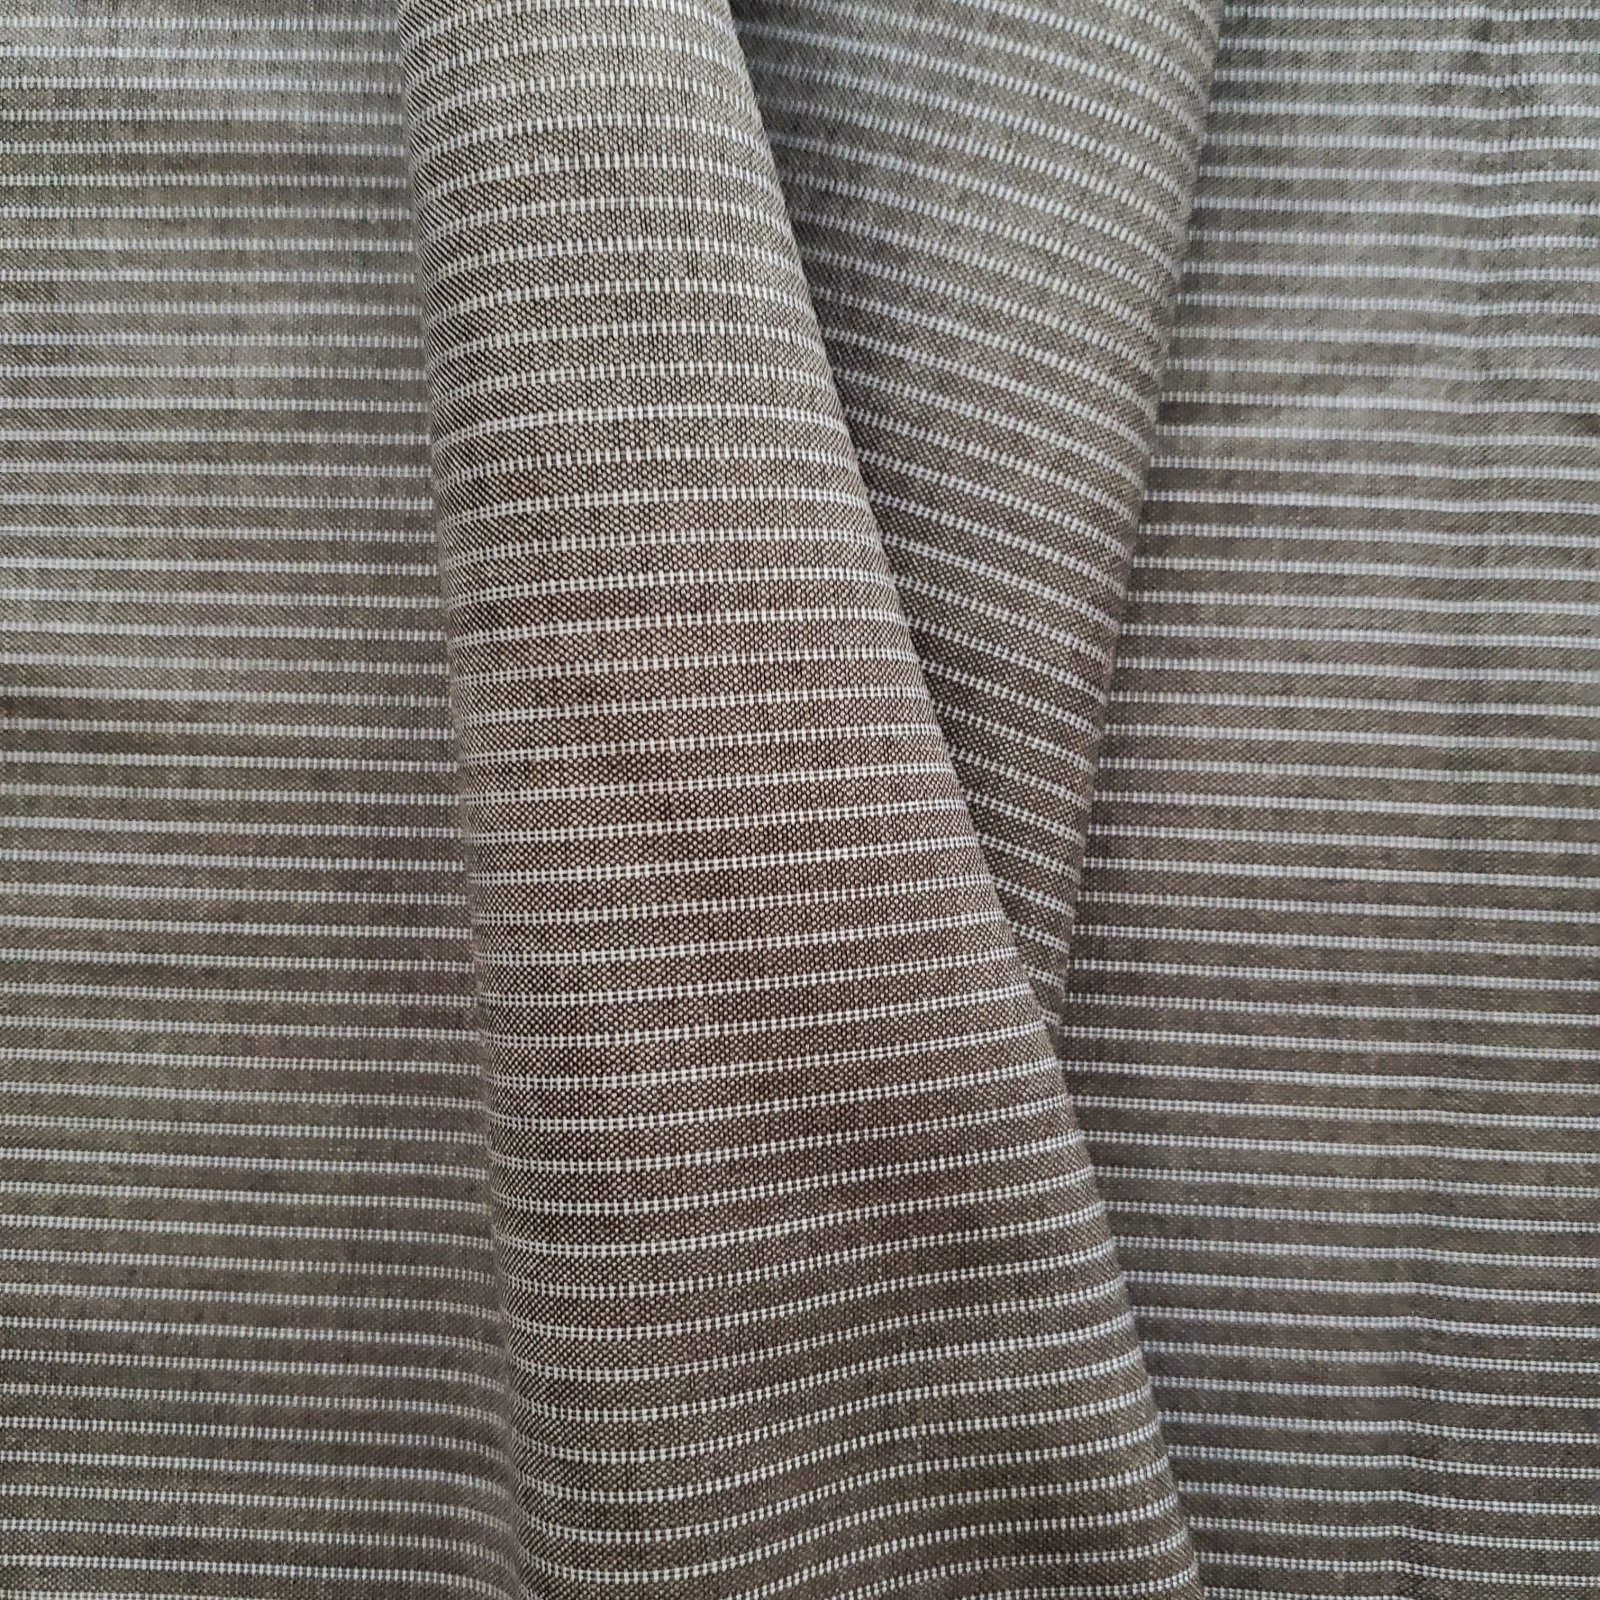 Fabric Wool Suiting Gray on Gray Pinstripe